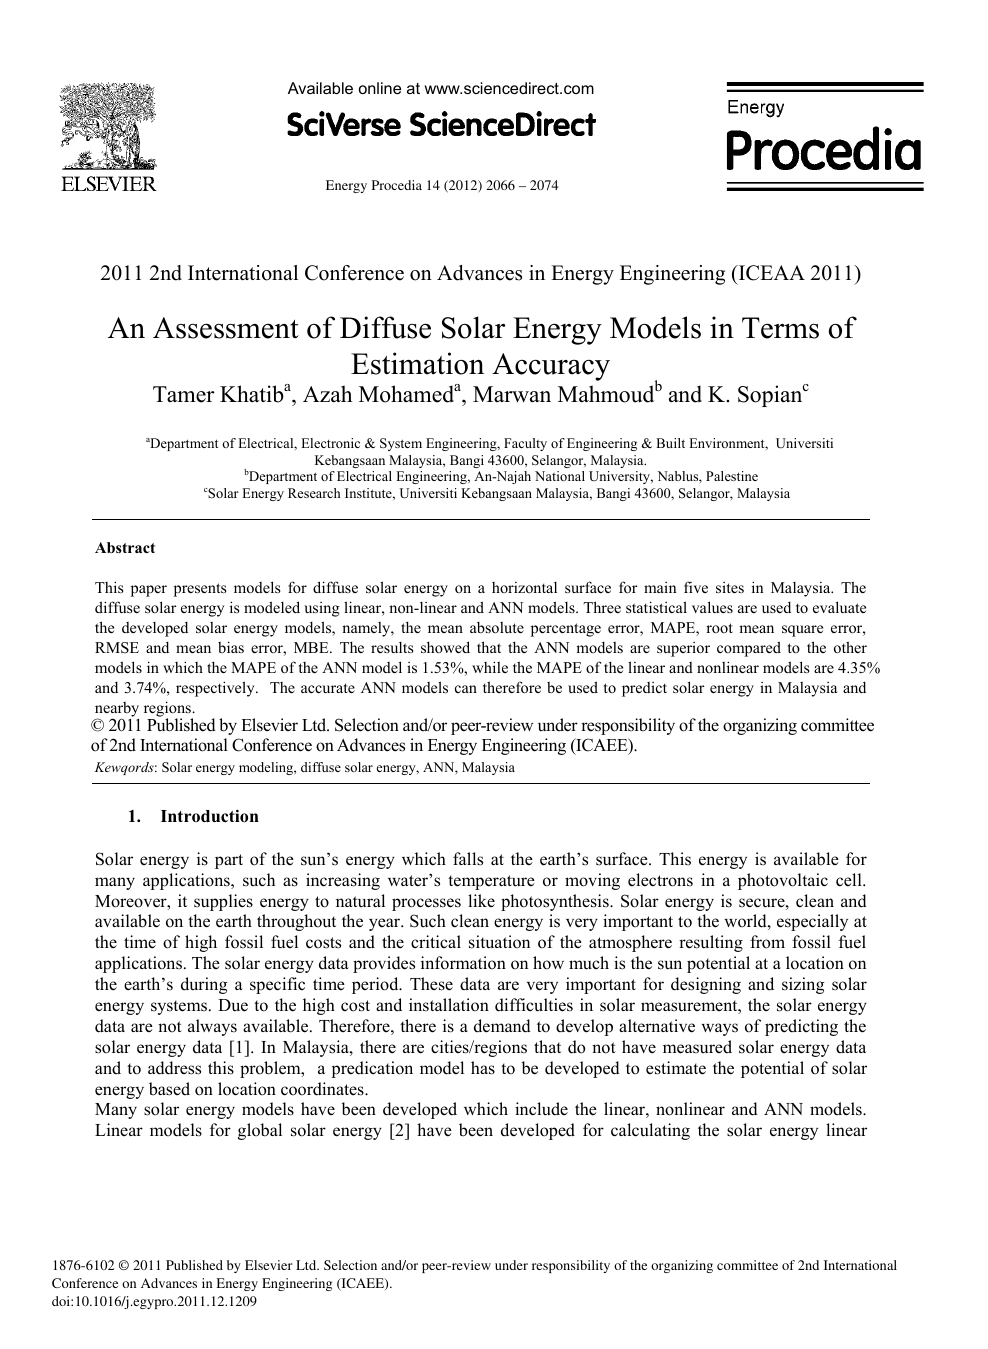 An Assessment Of Diffuse Solar Energy Models In Terms Of Estimation Accuracy Topic Of Research Paper In Earth And Related Environmental Sciences Download Scholarly Article Pdf And Read For Free On